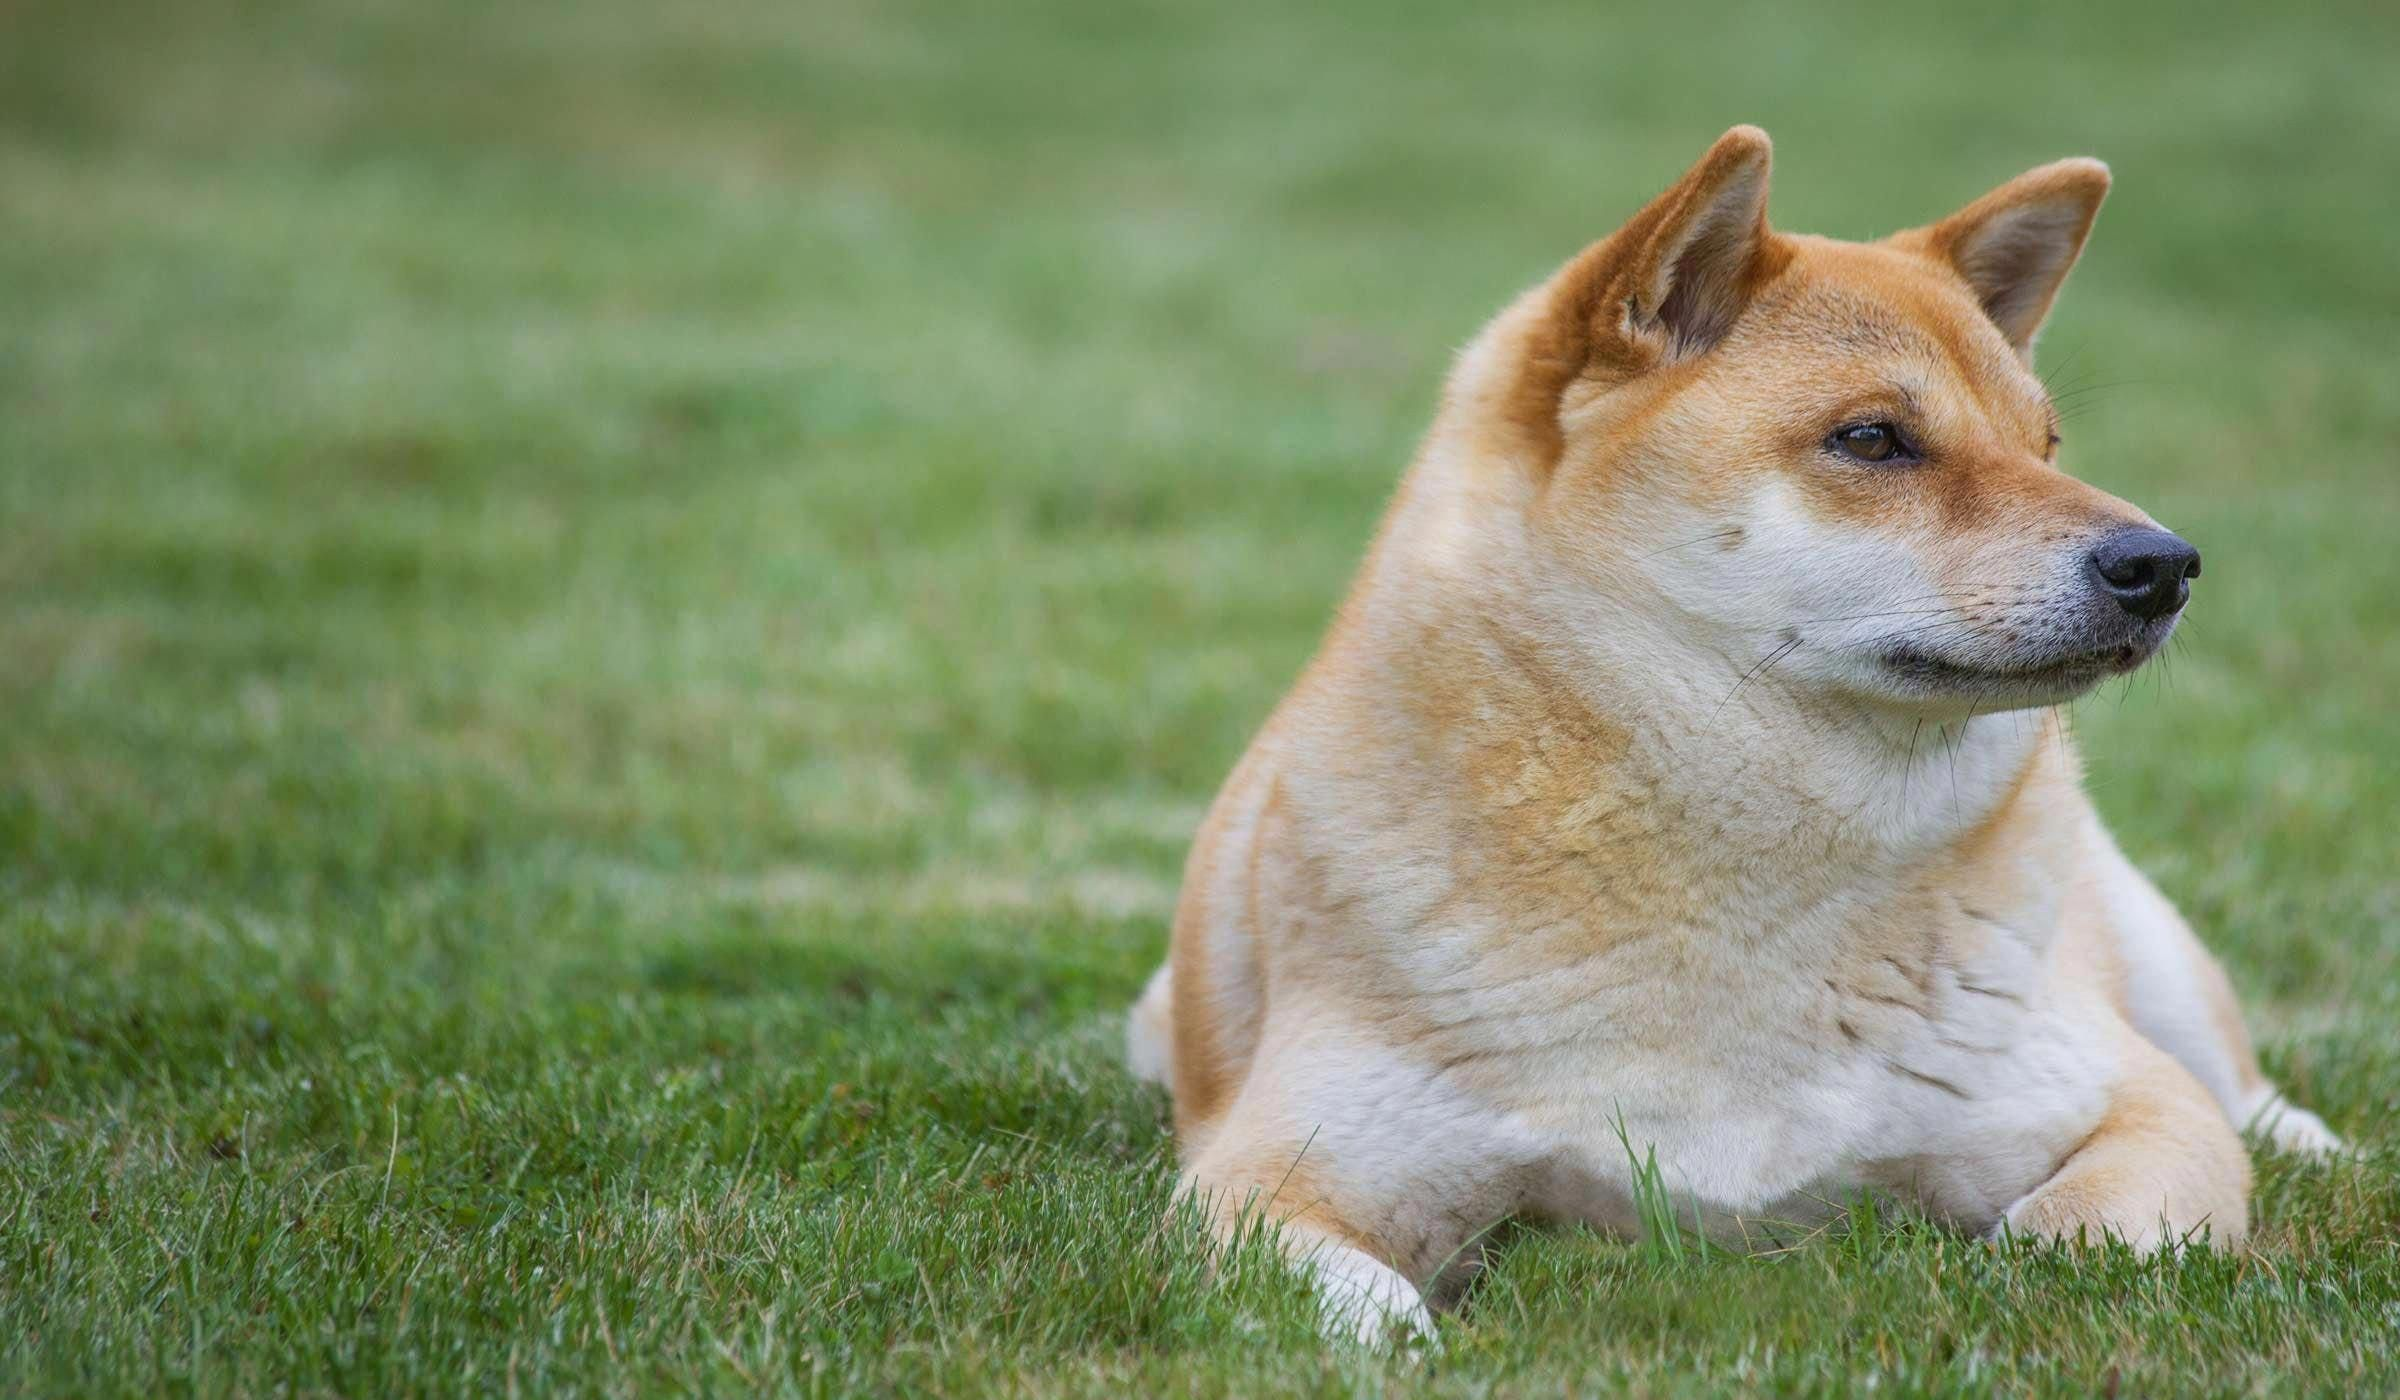 Learn how to potty train a shiba inu puppy using schedule